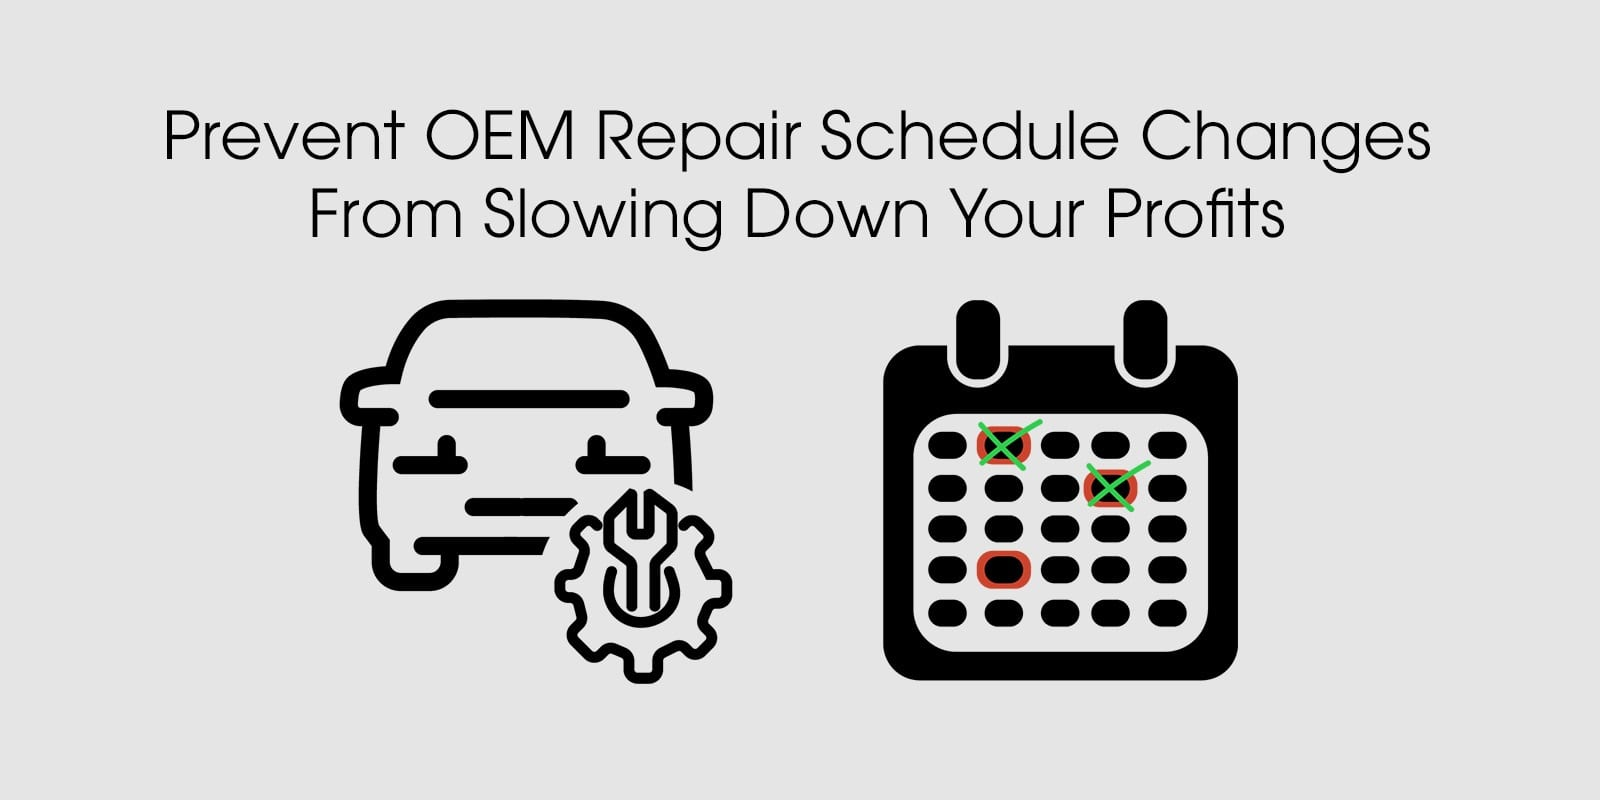 Prevent OEM Repair Schedule Changes From Slowing Down Your Profits